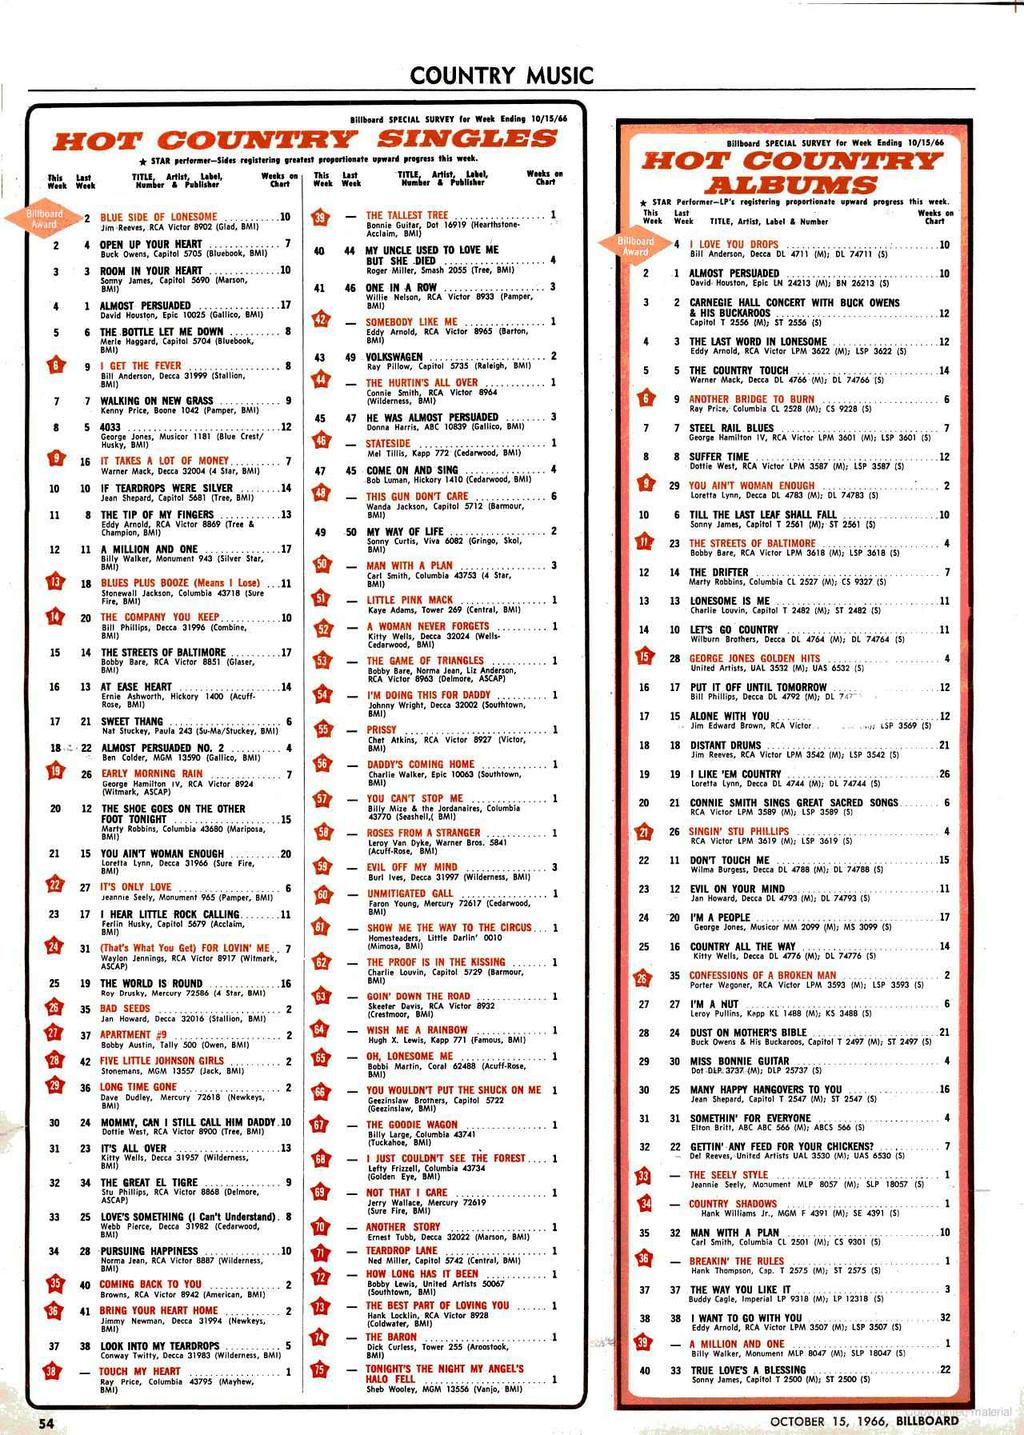 Weeping Major Disk Firms Pdf Bye Fever Childen Isi 10 Country Music L Billboard Special Survey Tar Week Ediap